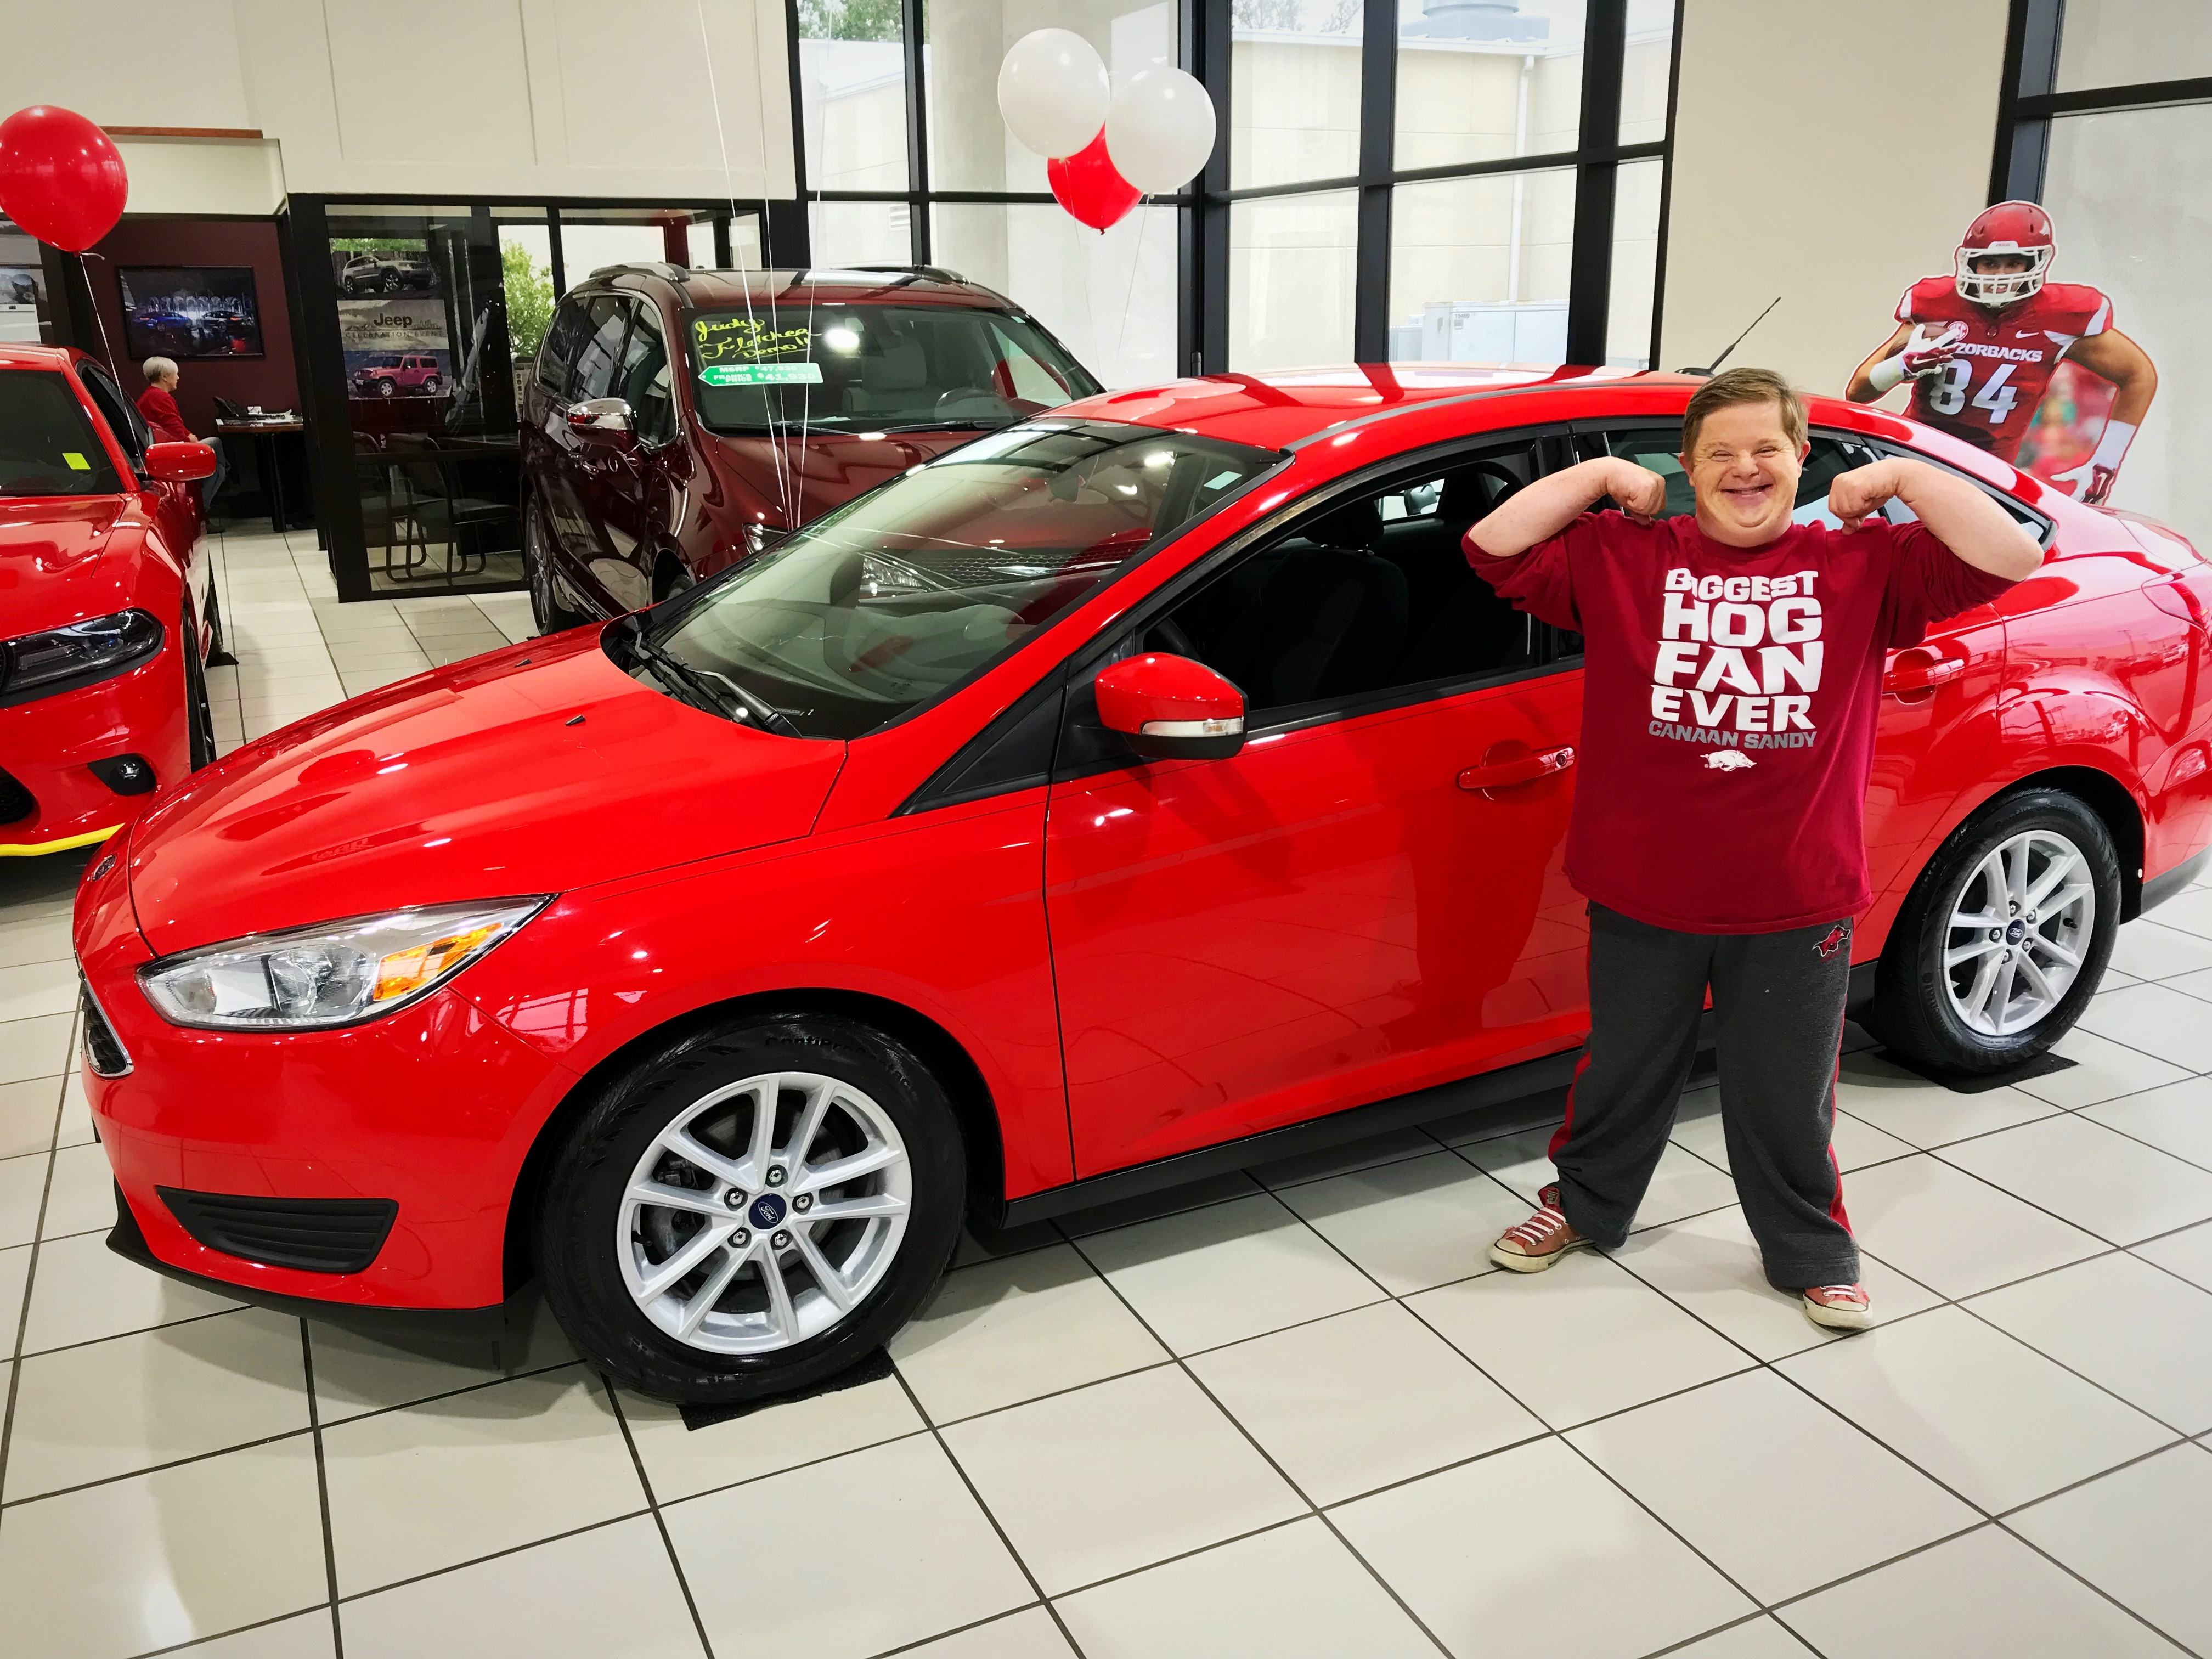 After logging 400,000 miles traveling to Razorback events, family of Hogs superfan surprised with new car | Arkansas Democrat-Gazette